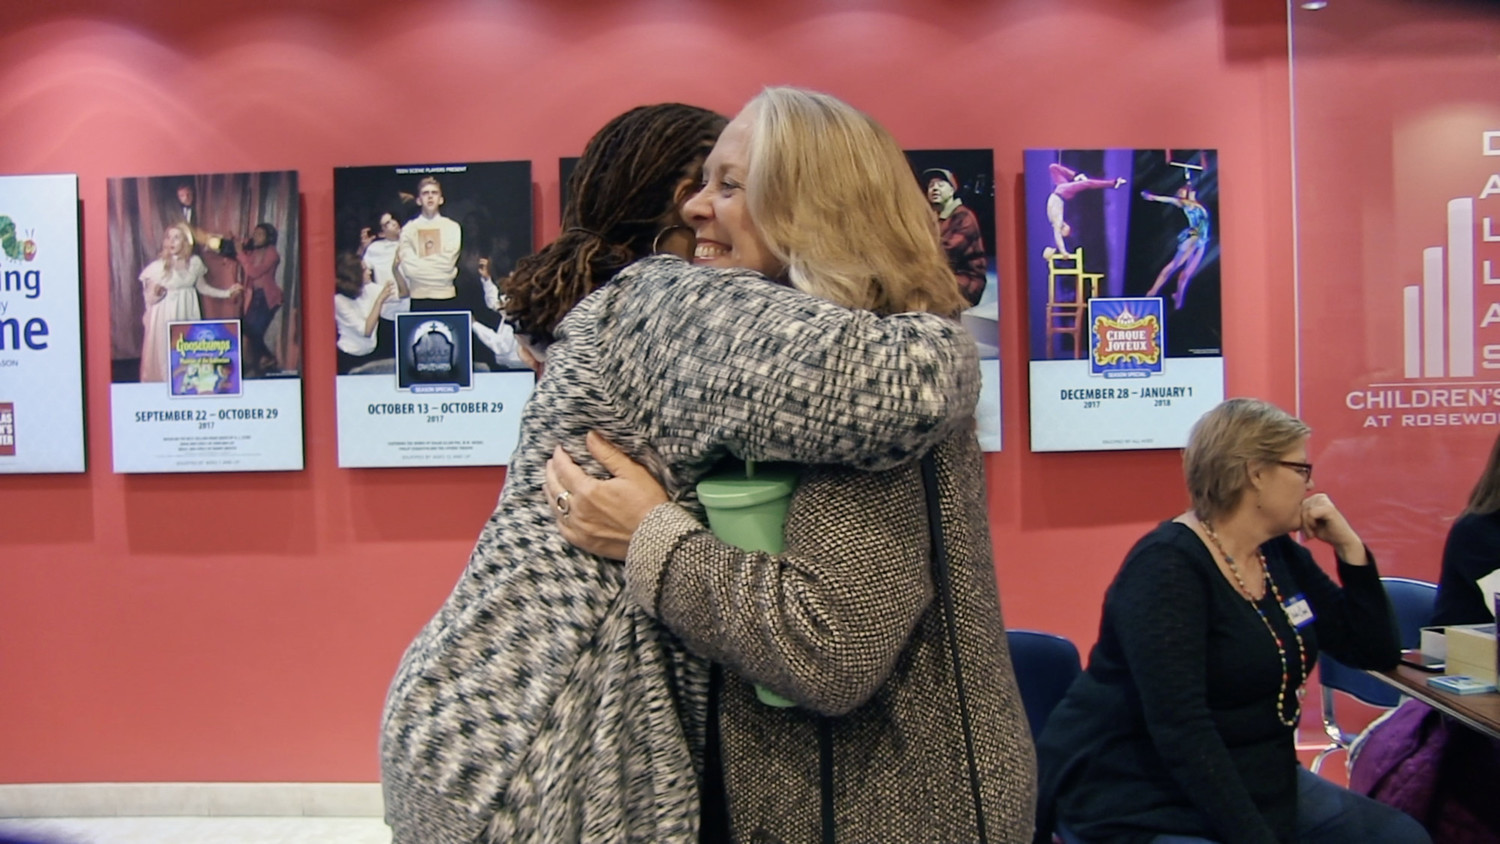 BWW Interview: Cheryl Allison, Denise Lee, Wendy Welch of SHATTER THE SILENCE at the USA Film Festival